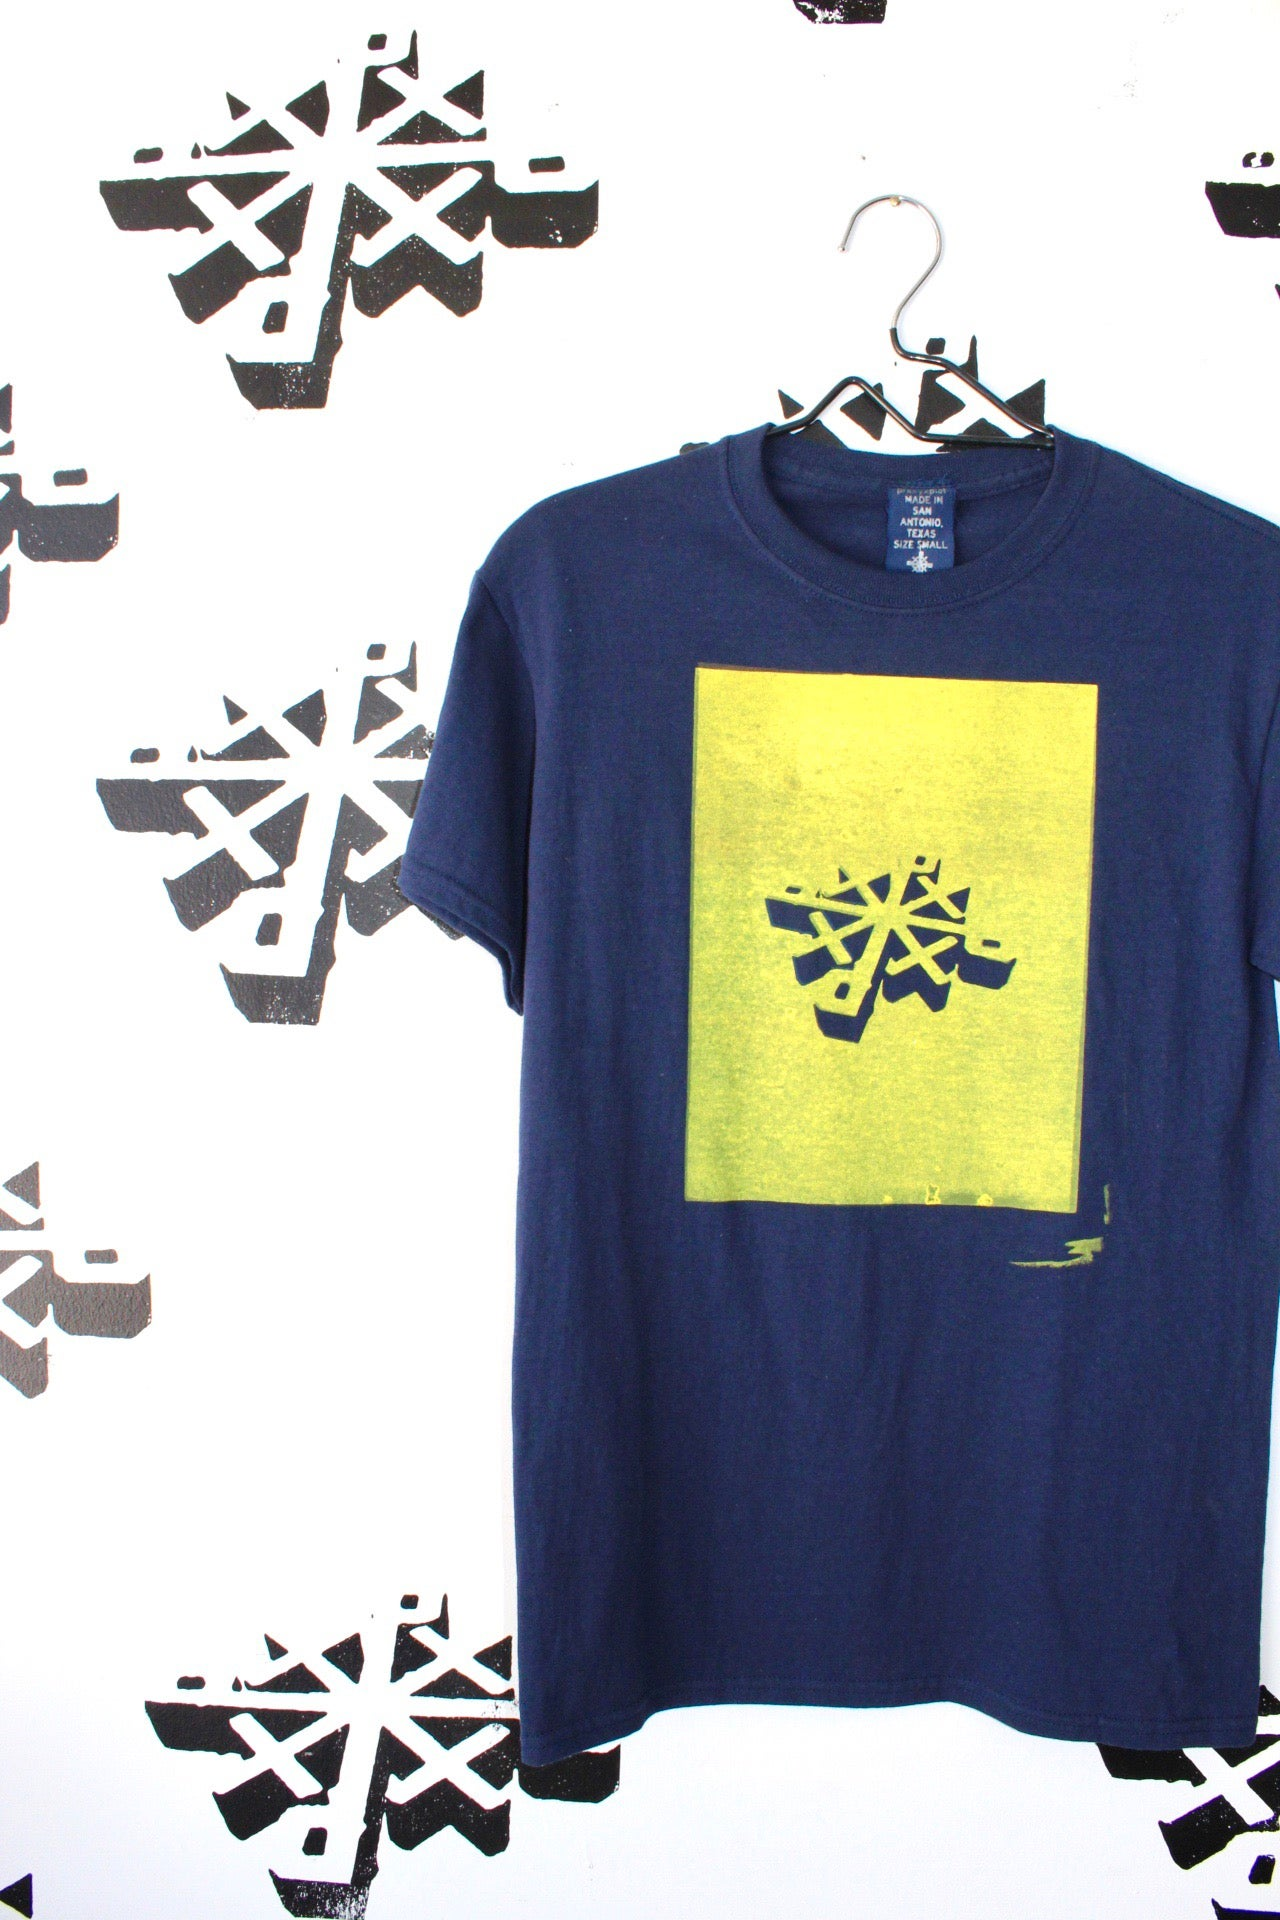 Image of get in there tee in navy blue